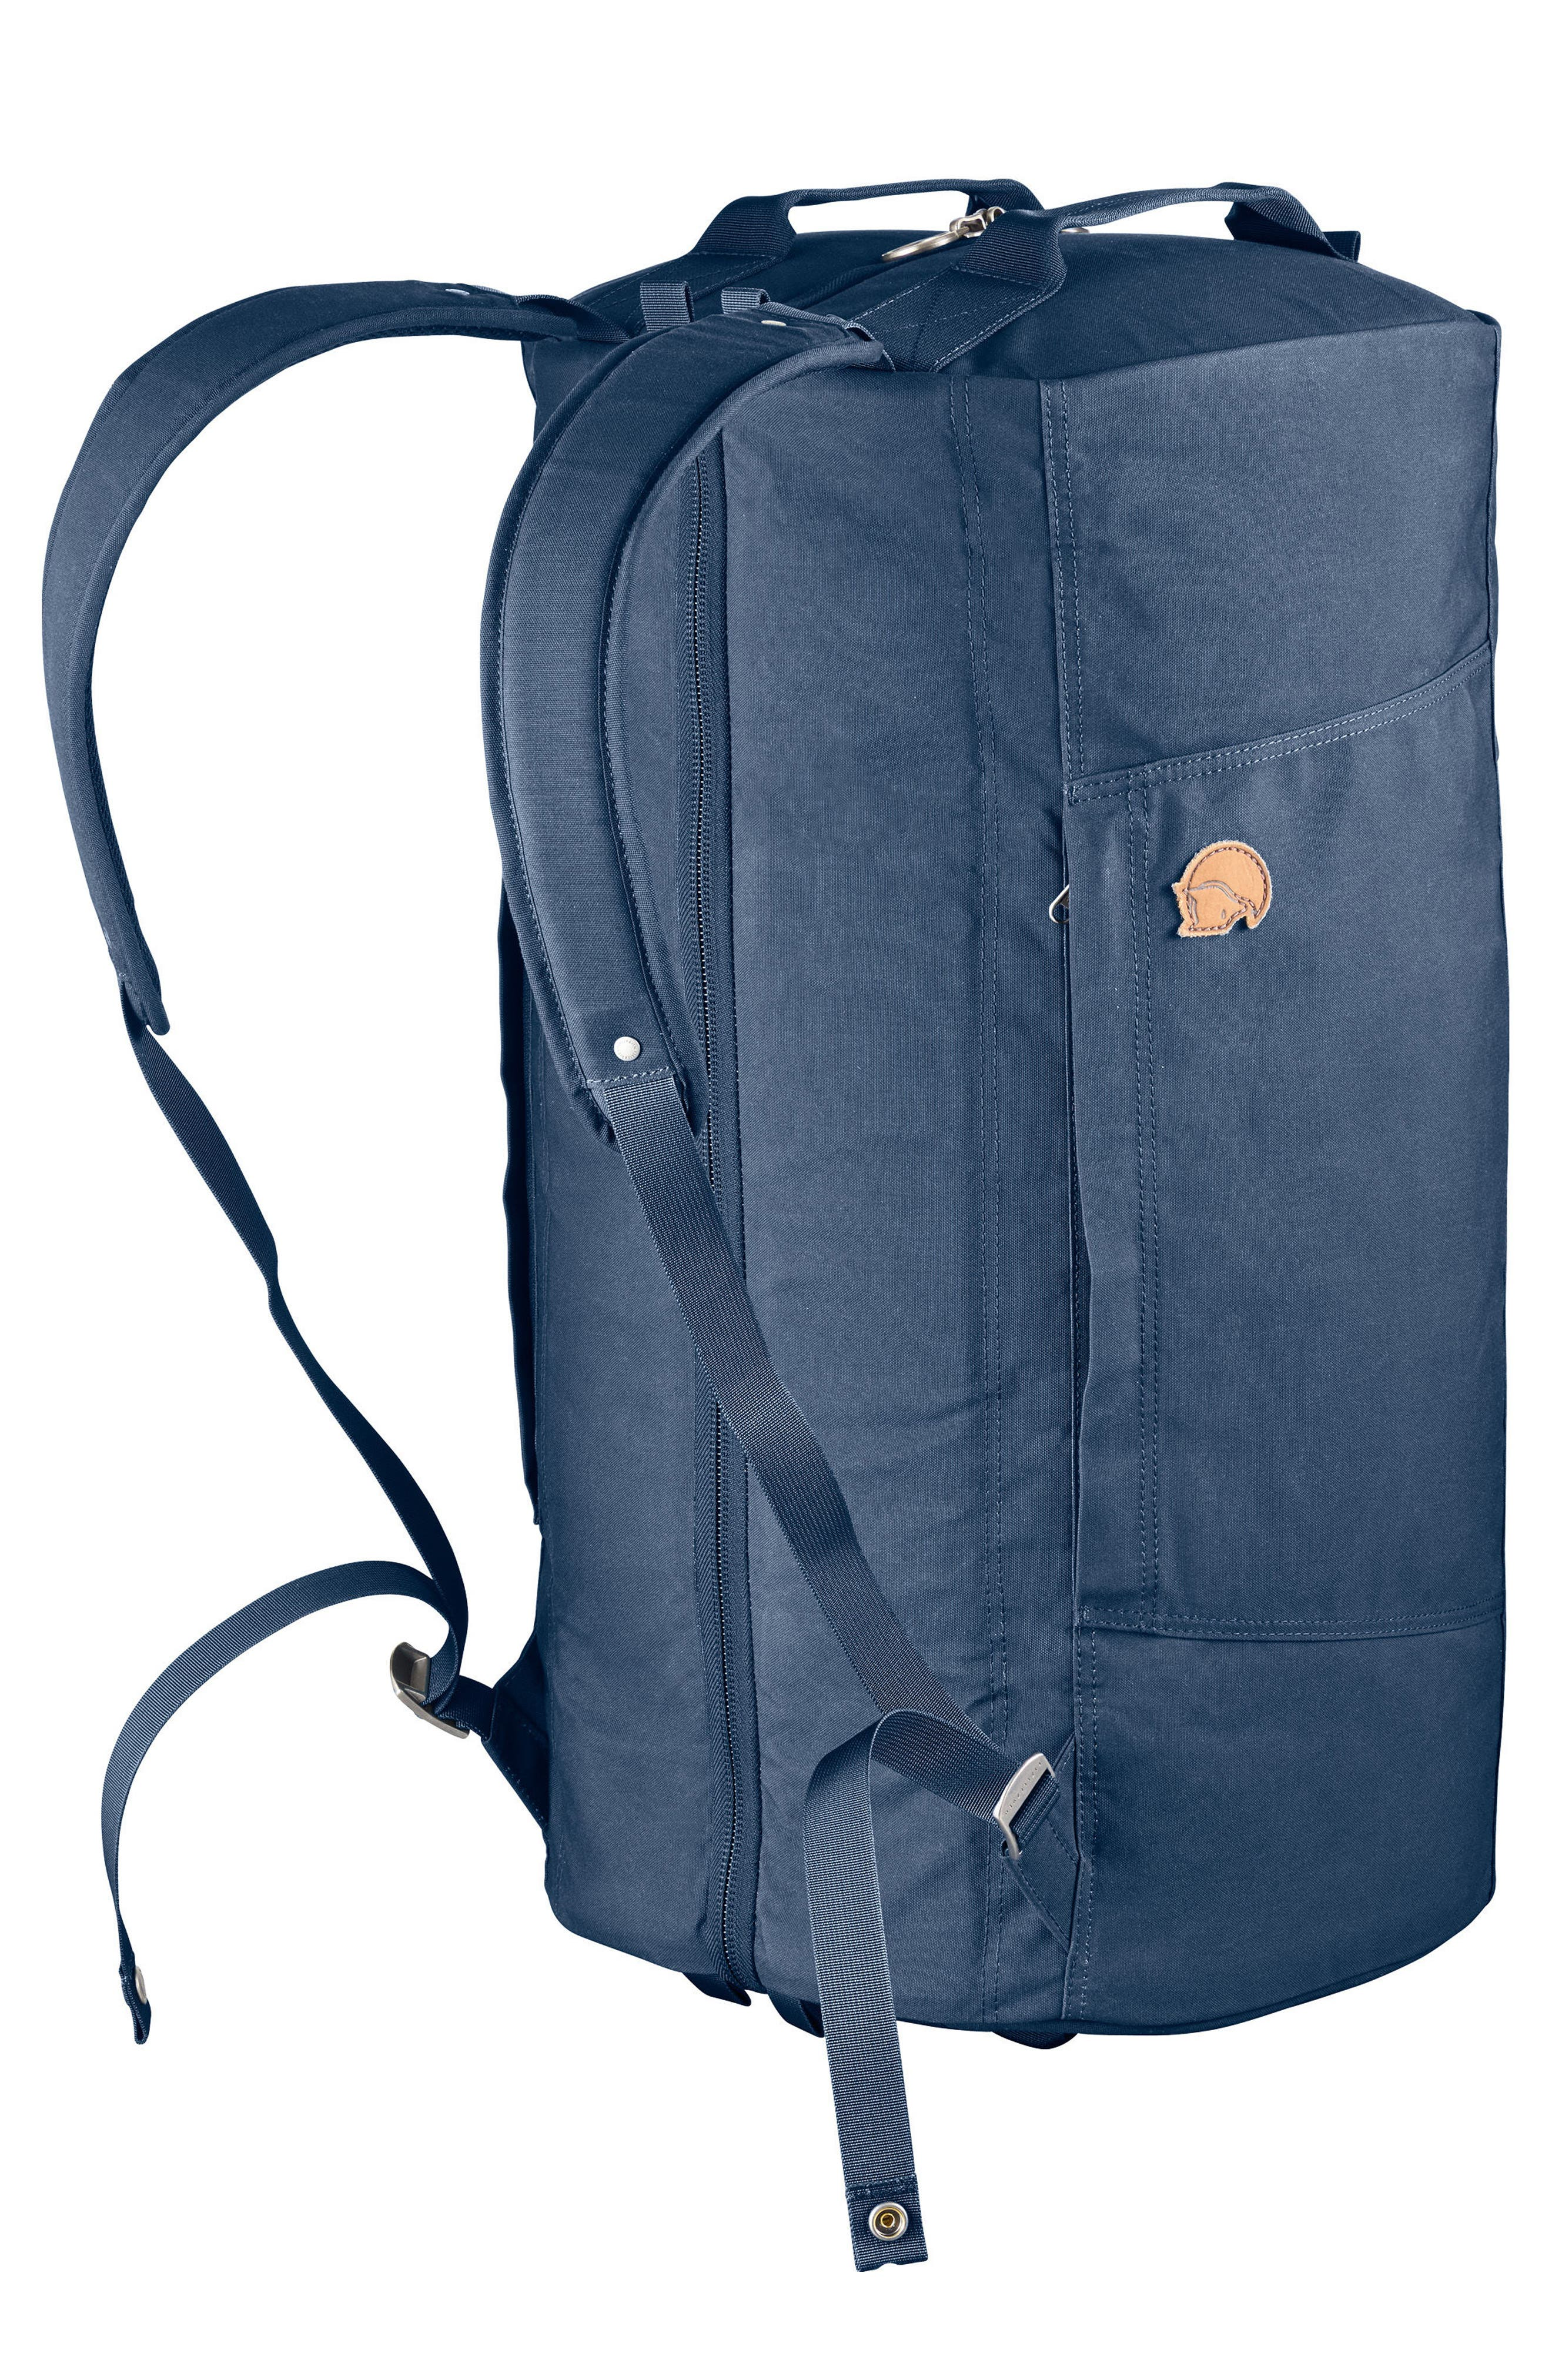 Splitpack Large Backpack,                             Main thumbnail 1, color,                             NAVY